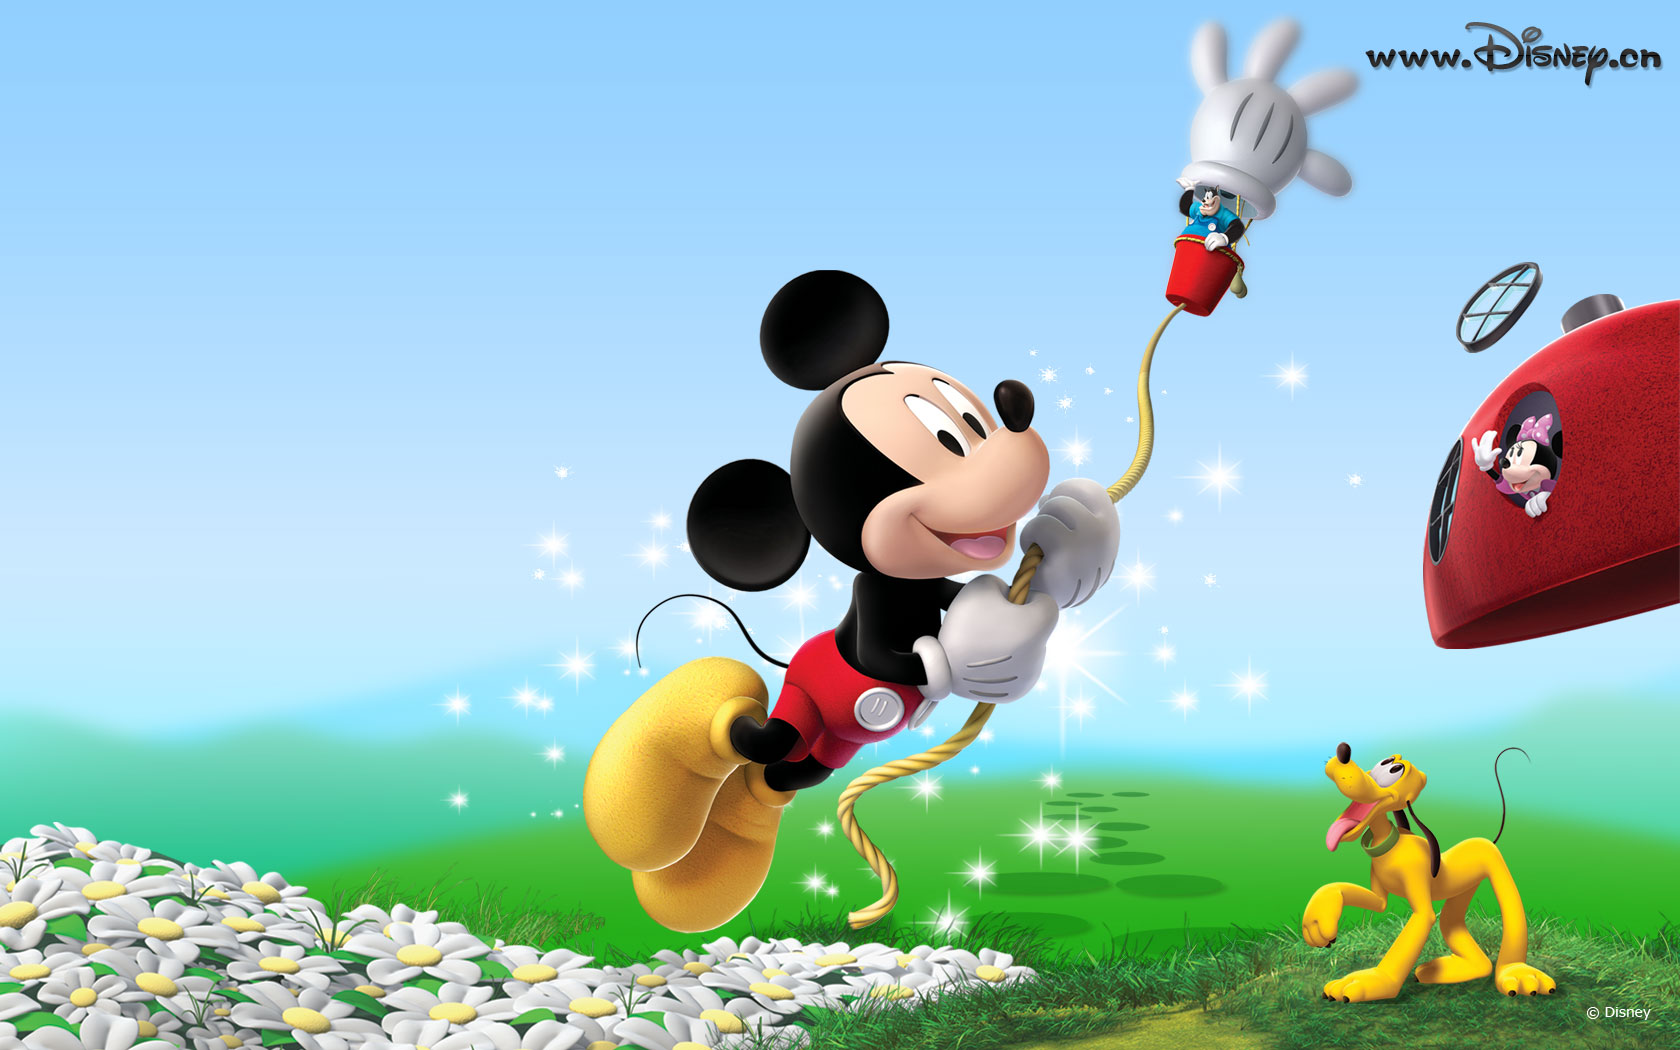 Best ideas about Mickey Mouse Wallpaper on Pinterest  Disney 1680x1050